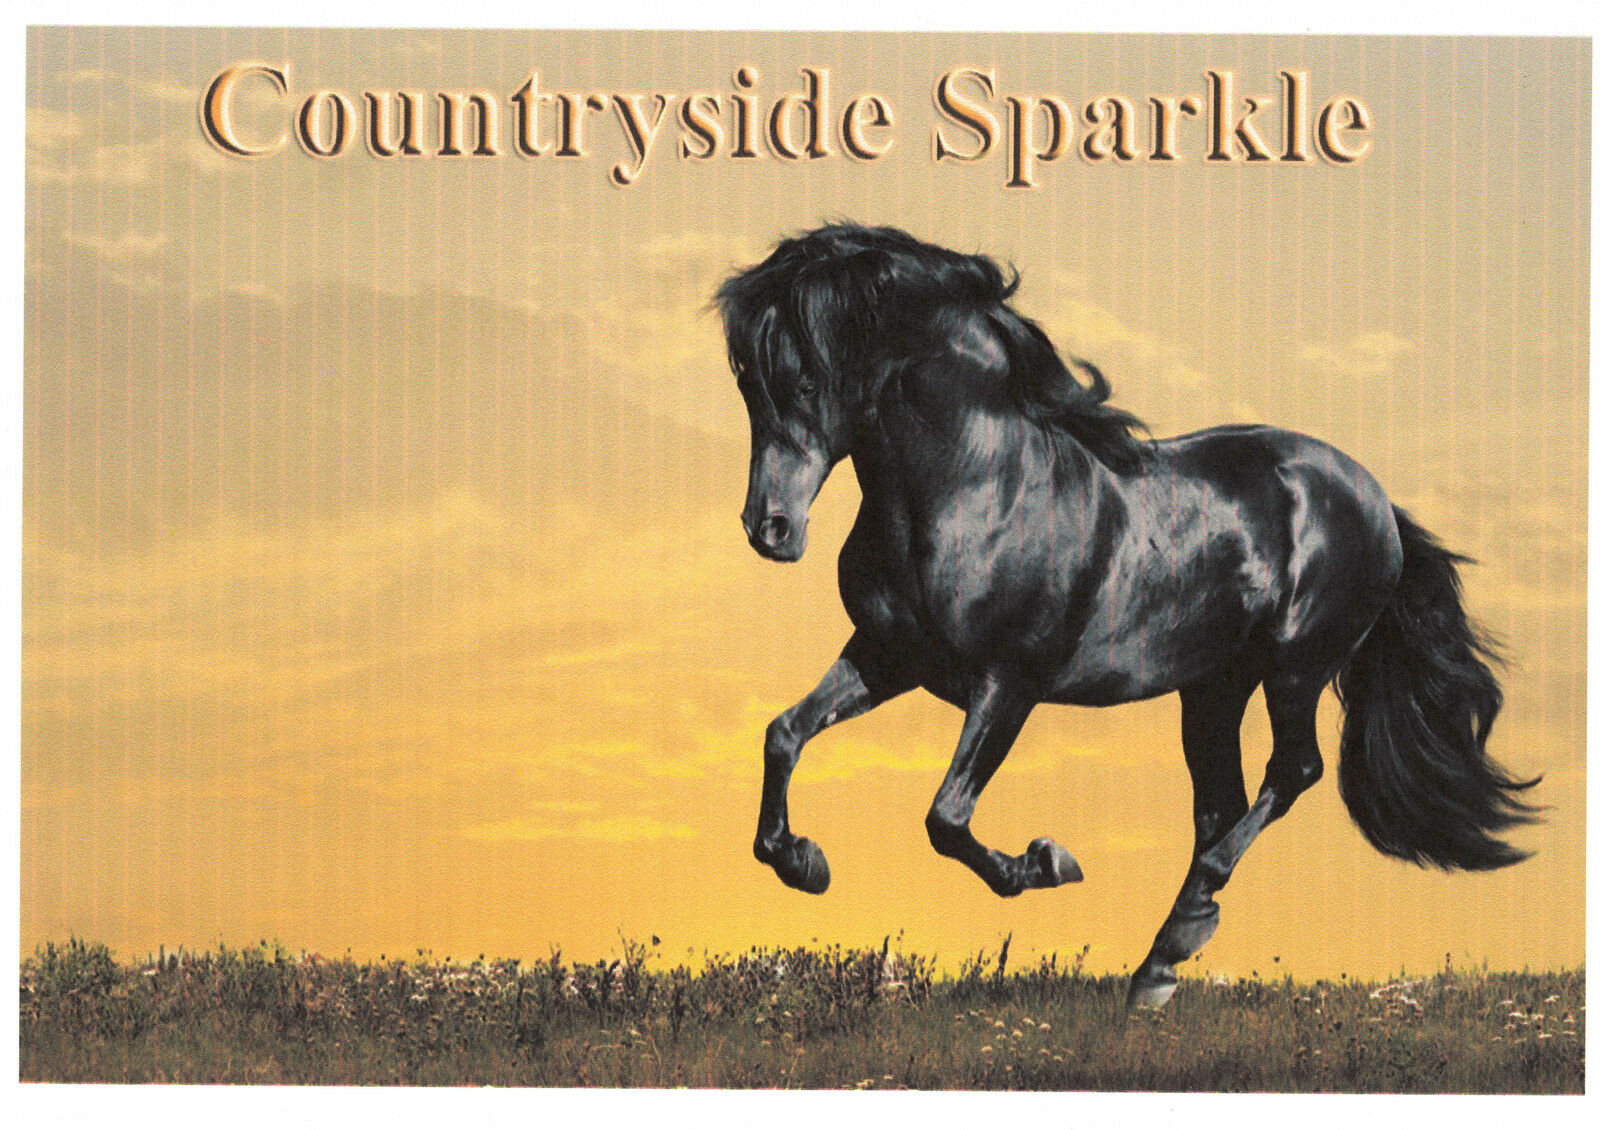 Countryside Sparkle